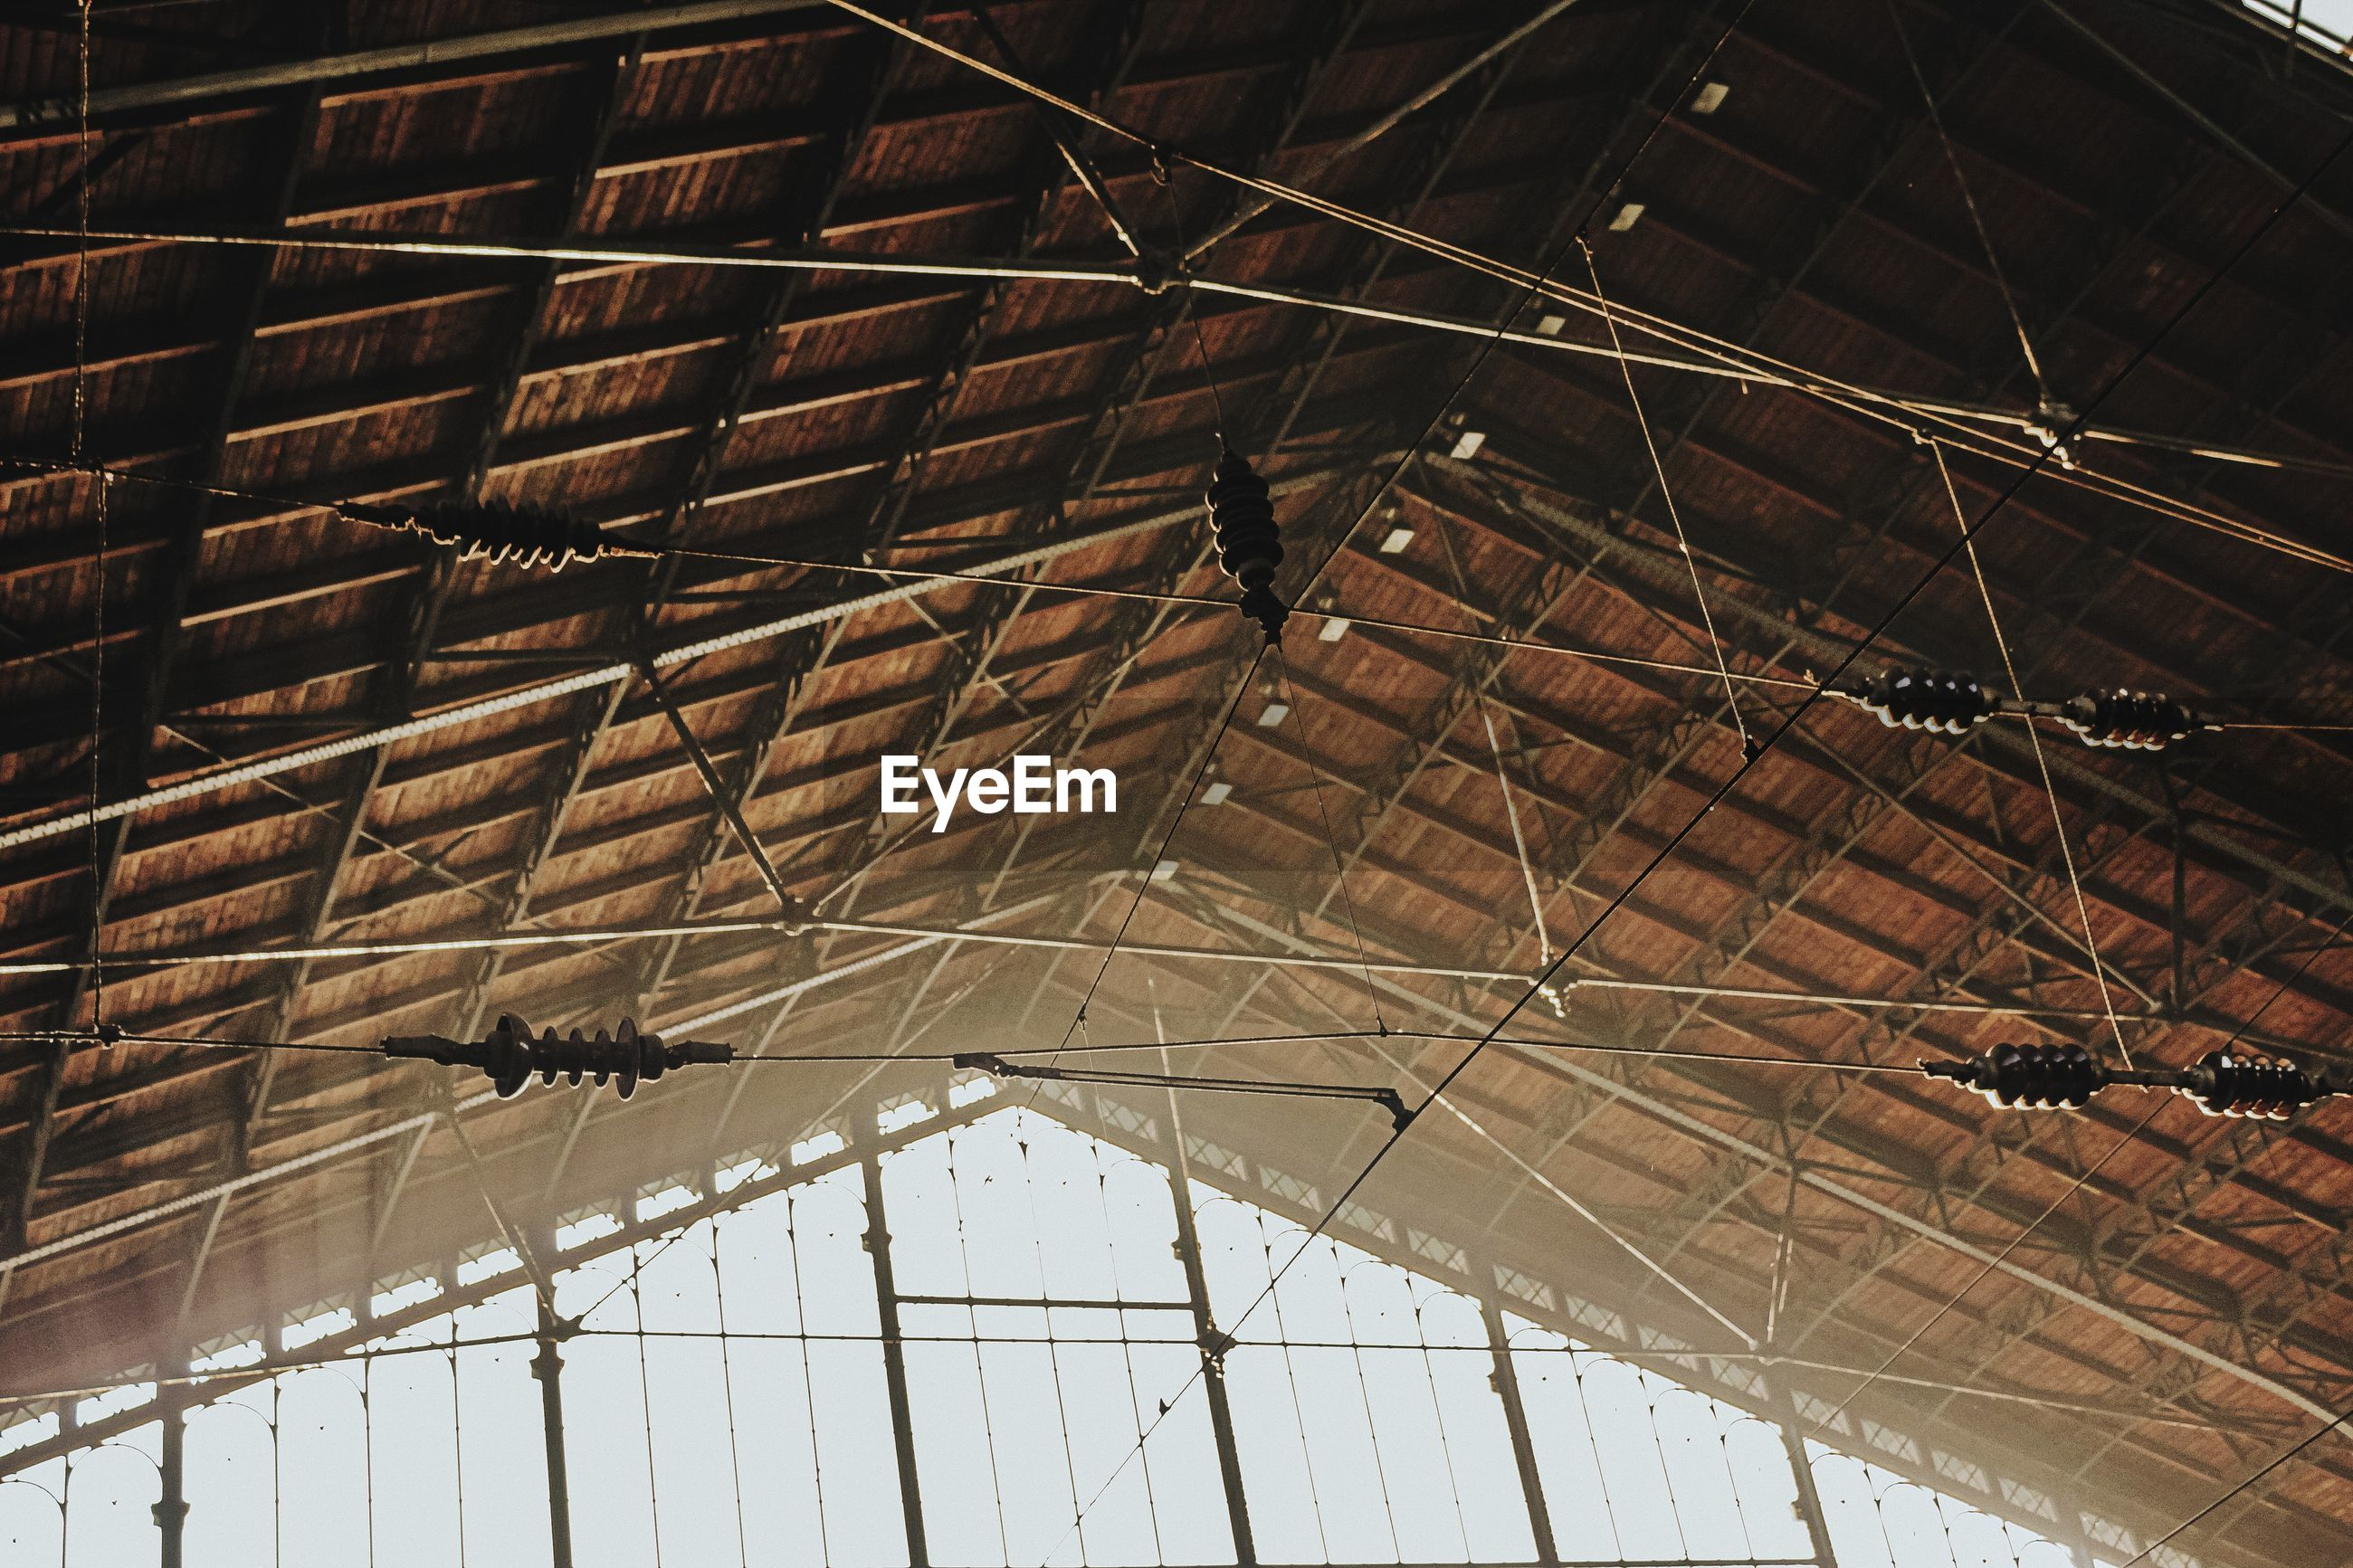 Low angle view of train station roof hanging from ceiling